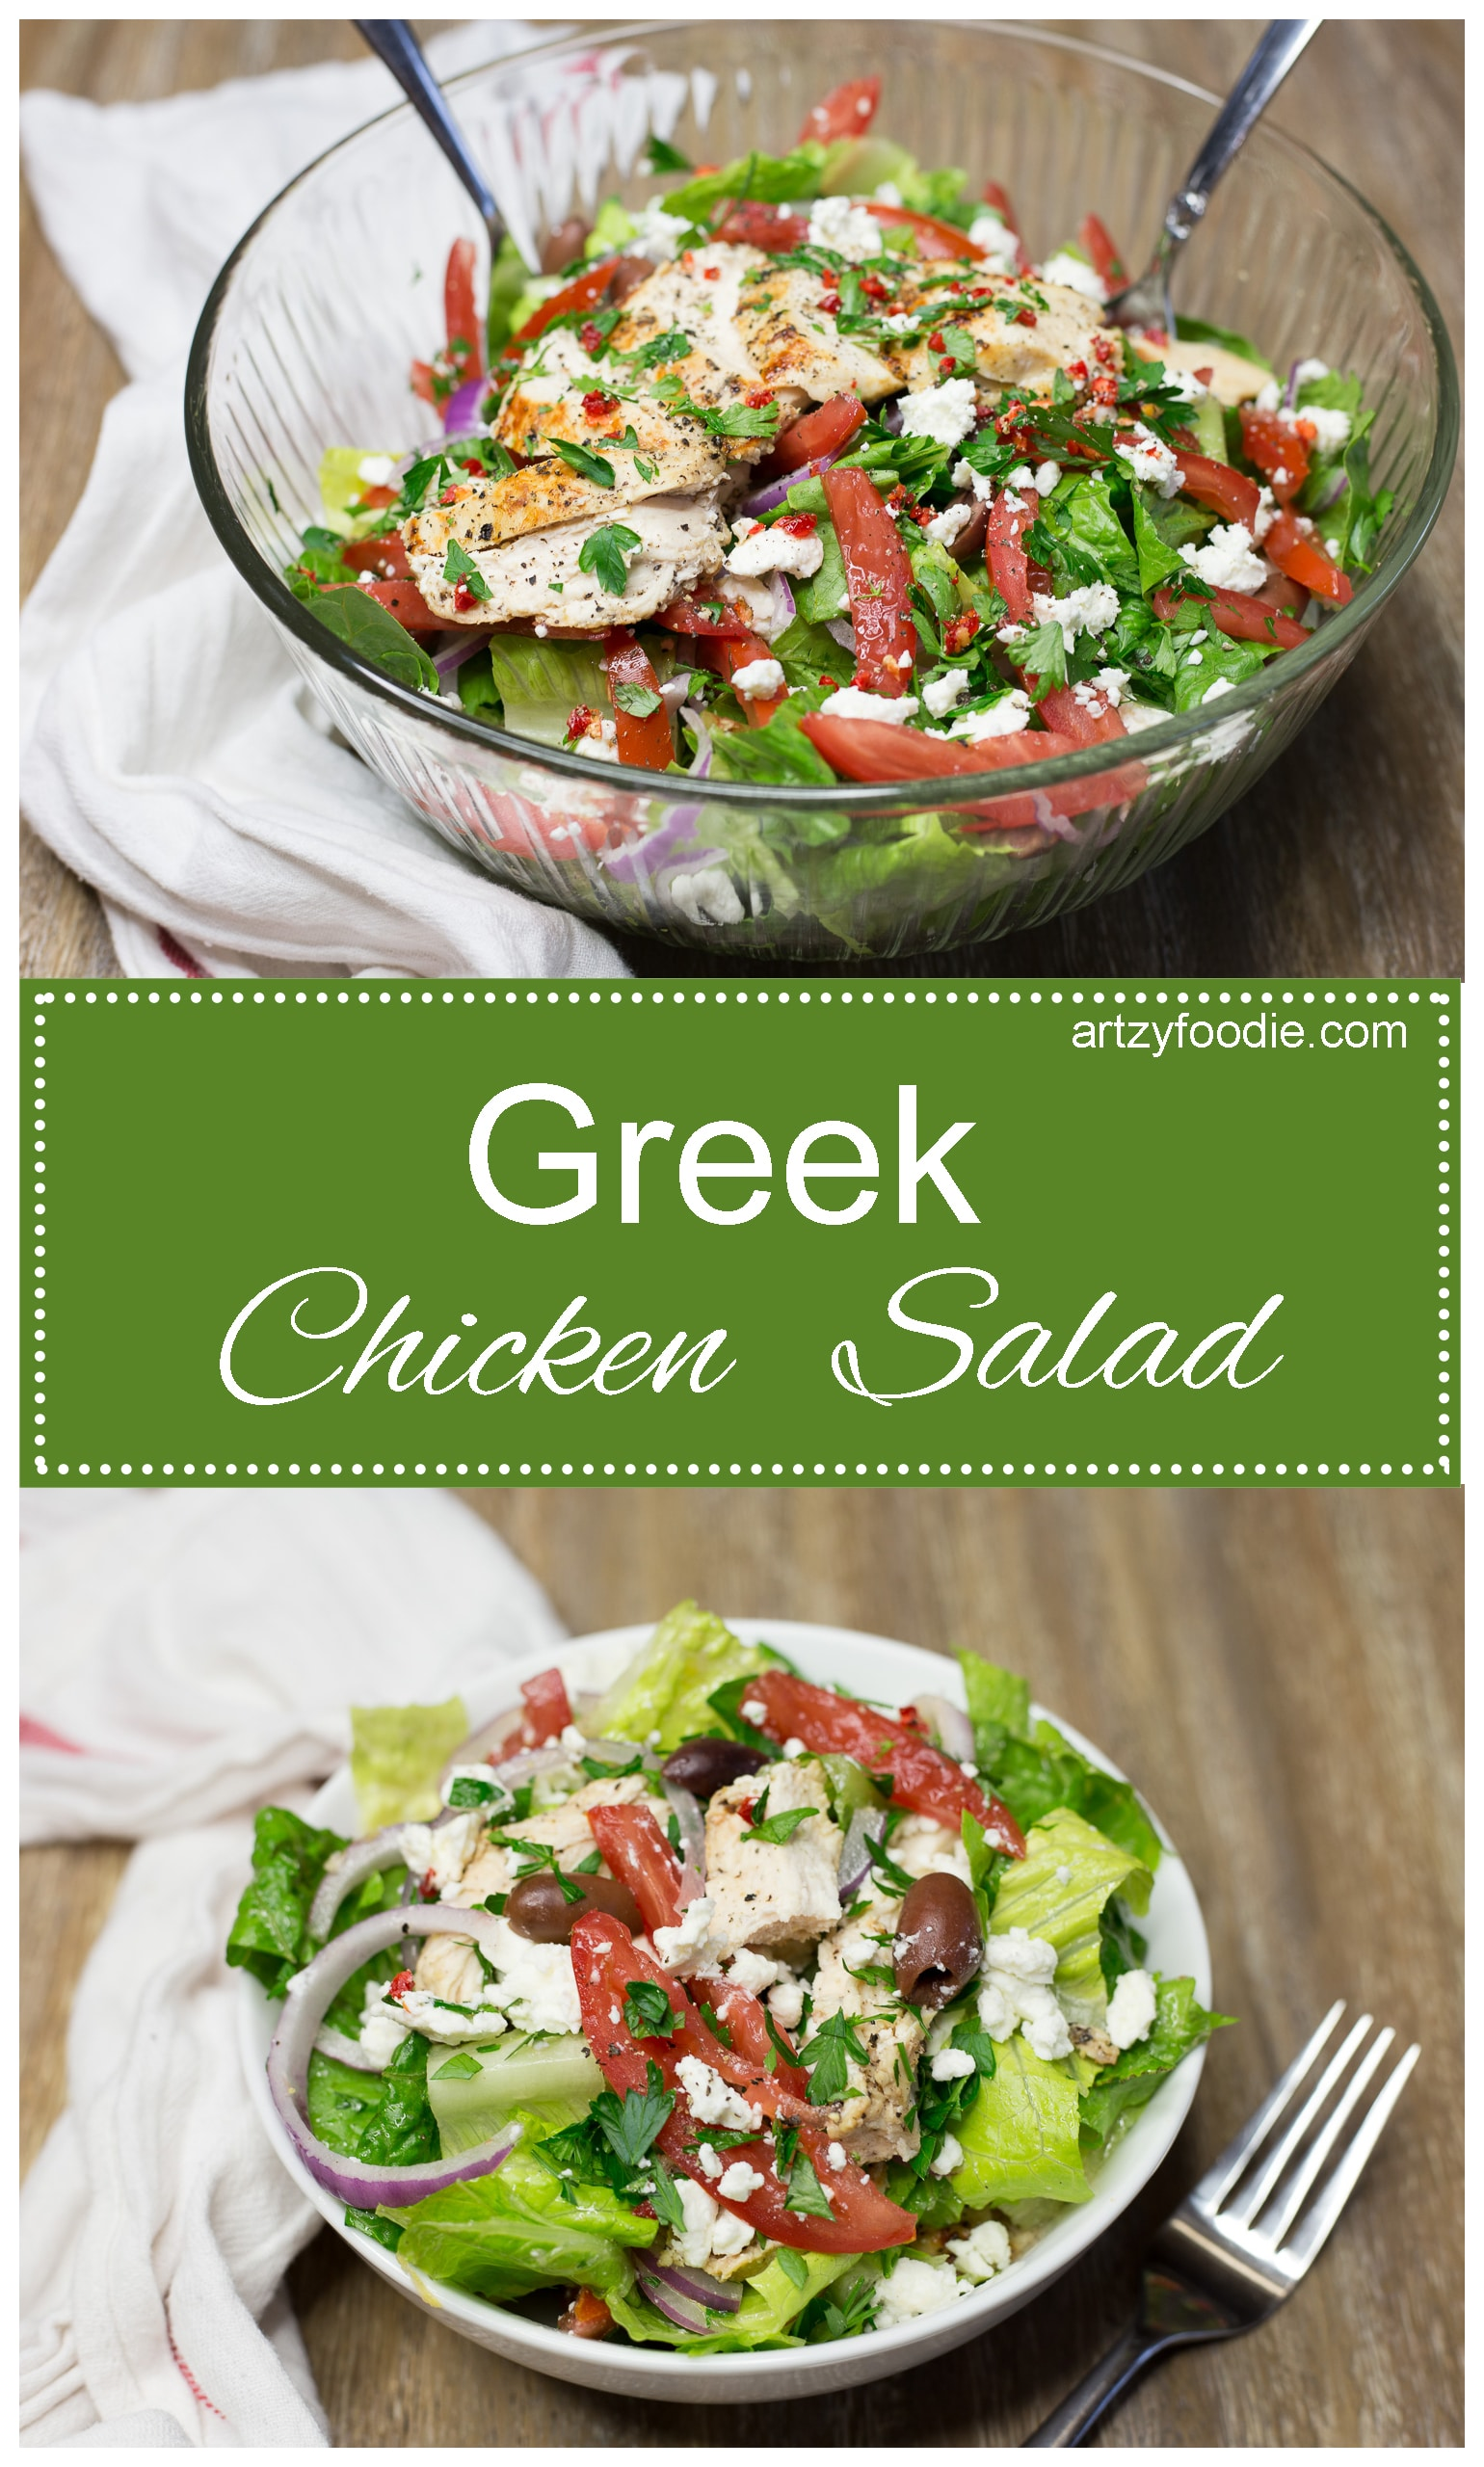 Greek chicken salad is a fresh, hearty salad that is sure to satisfy your hunger! |artzyfoodie.com|